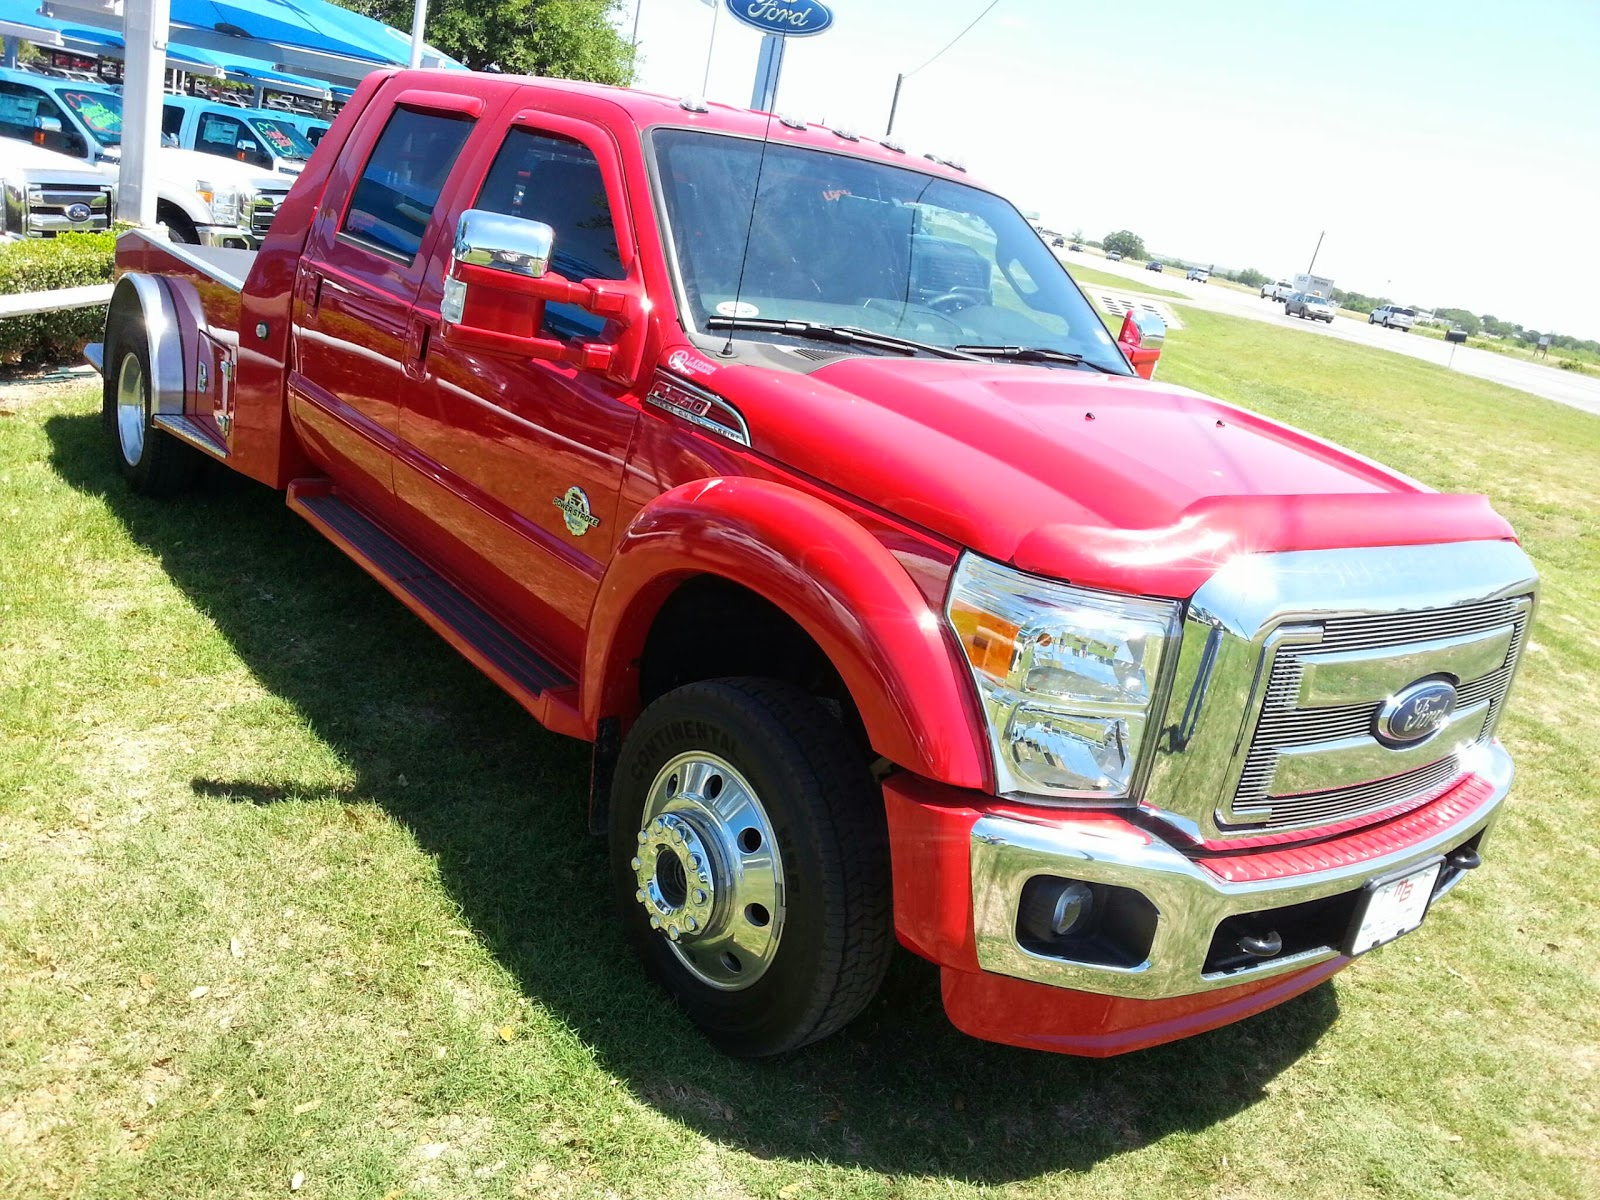 hight resolution of new 2015 ford f550 laredo hauler trucks call troy young 817 243 9840 tdy sales